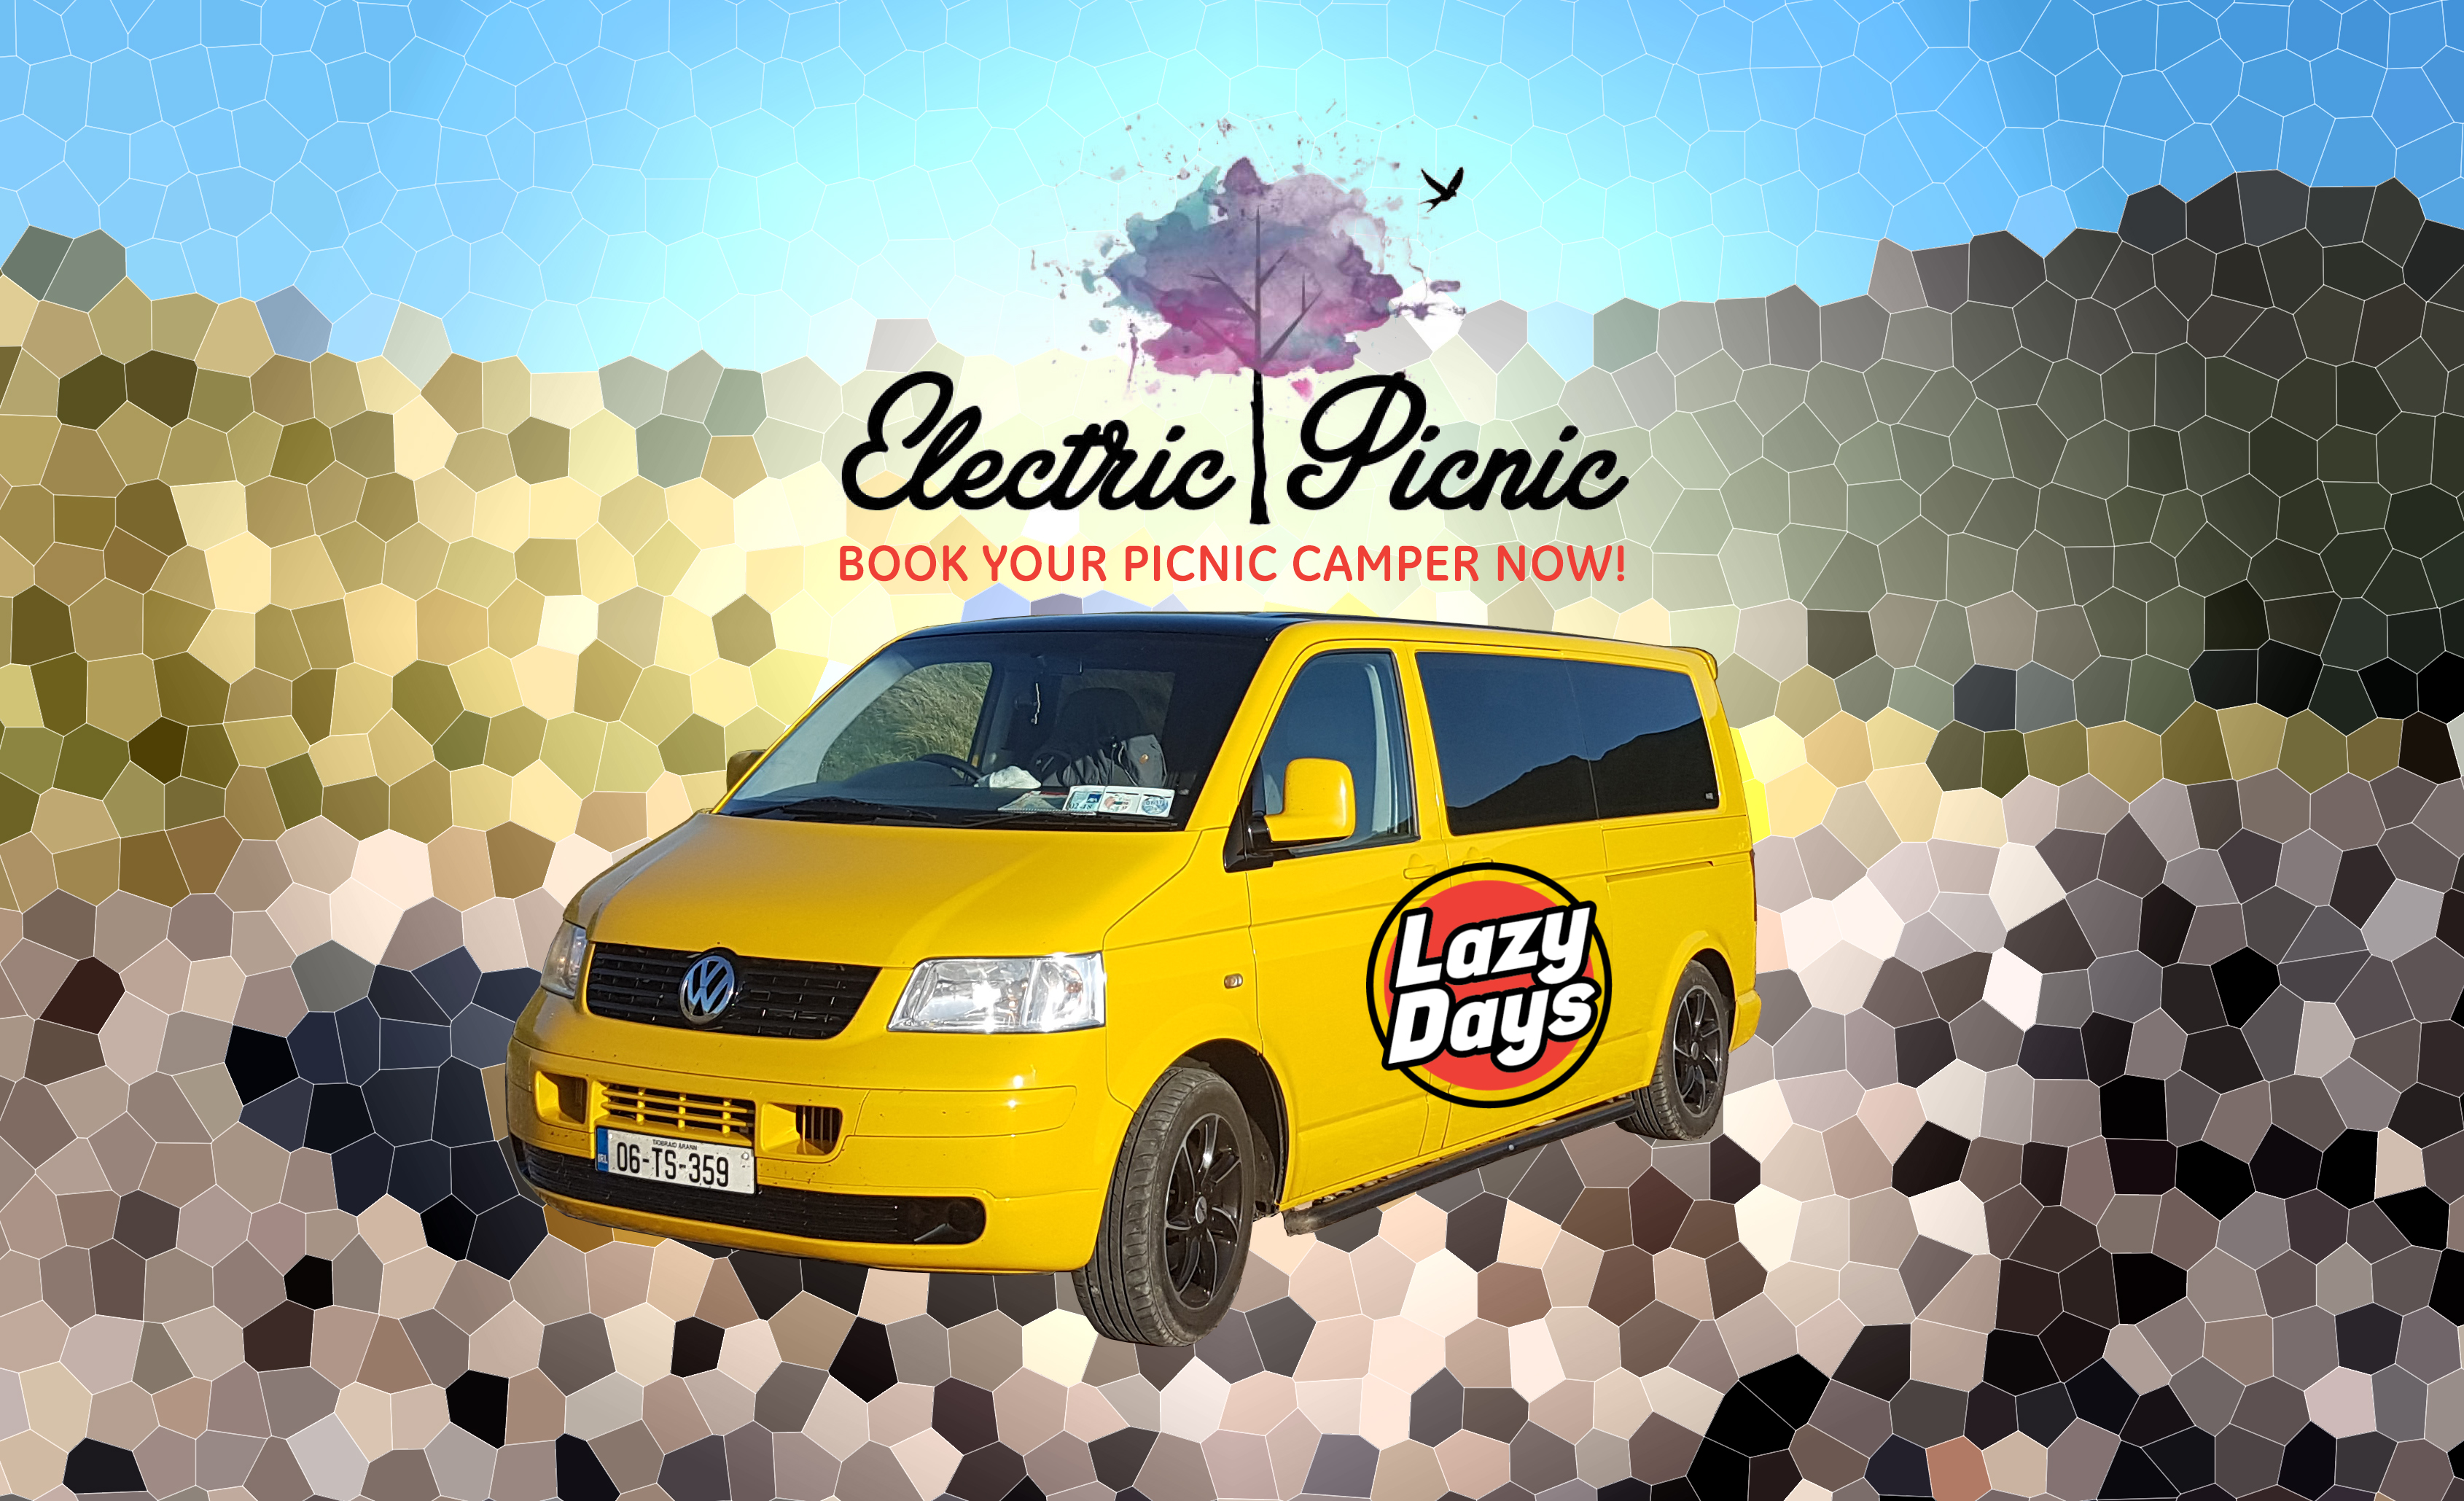 Book a Lazy Days camper for the Electric Picnic